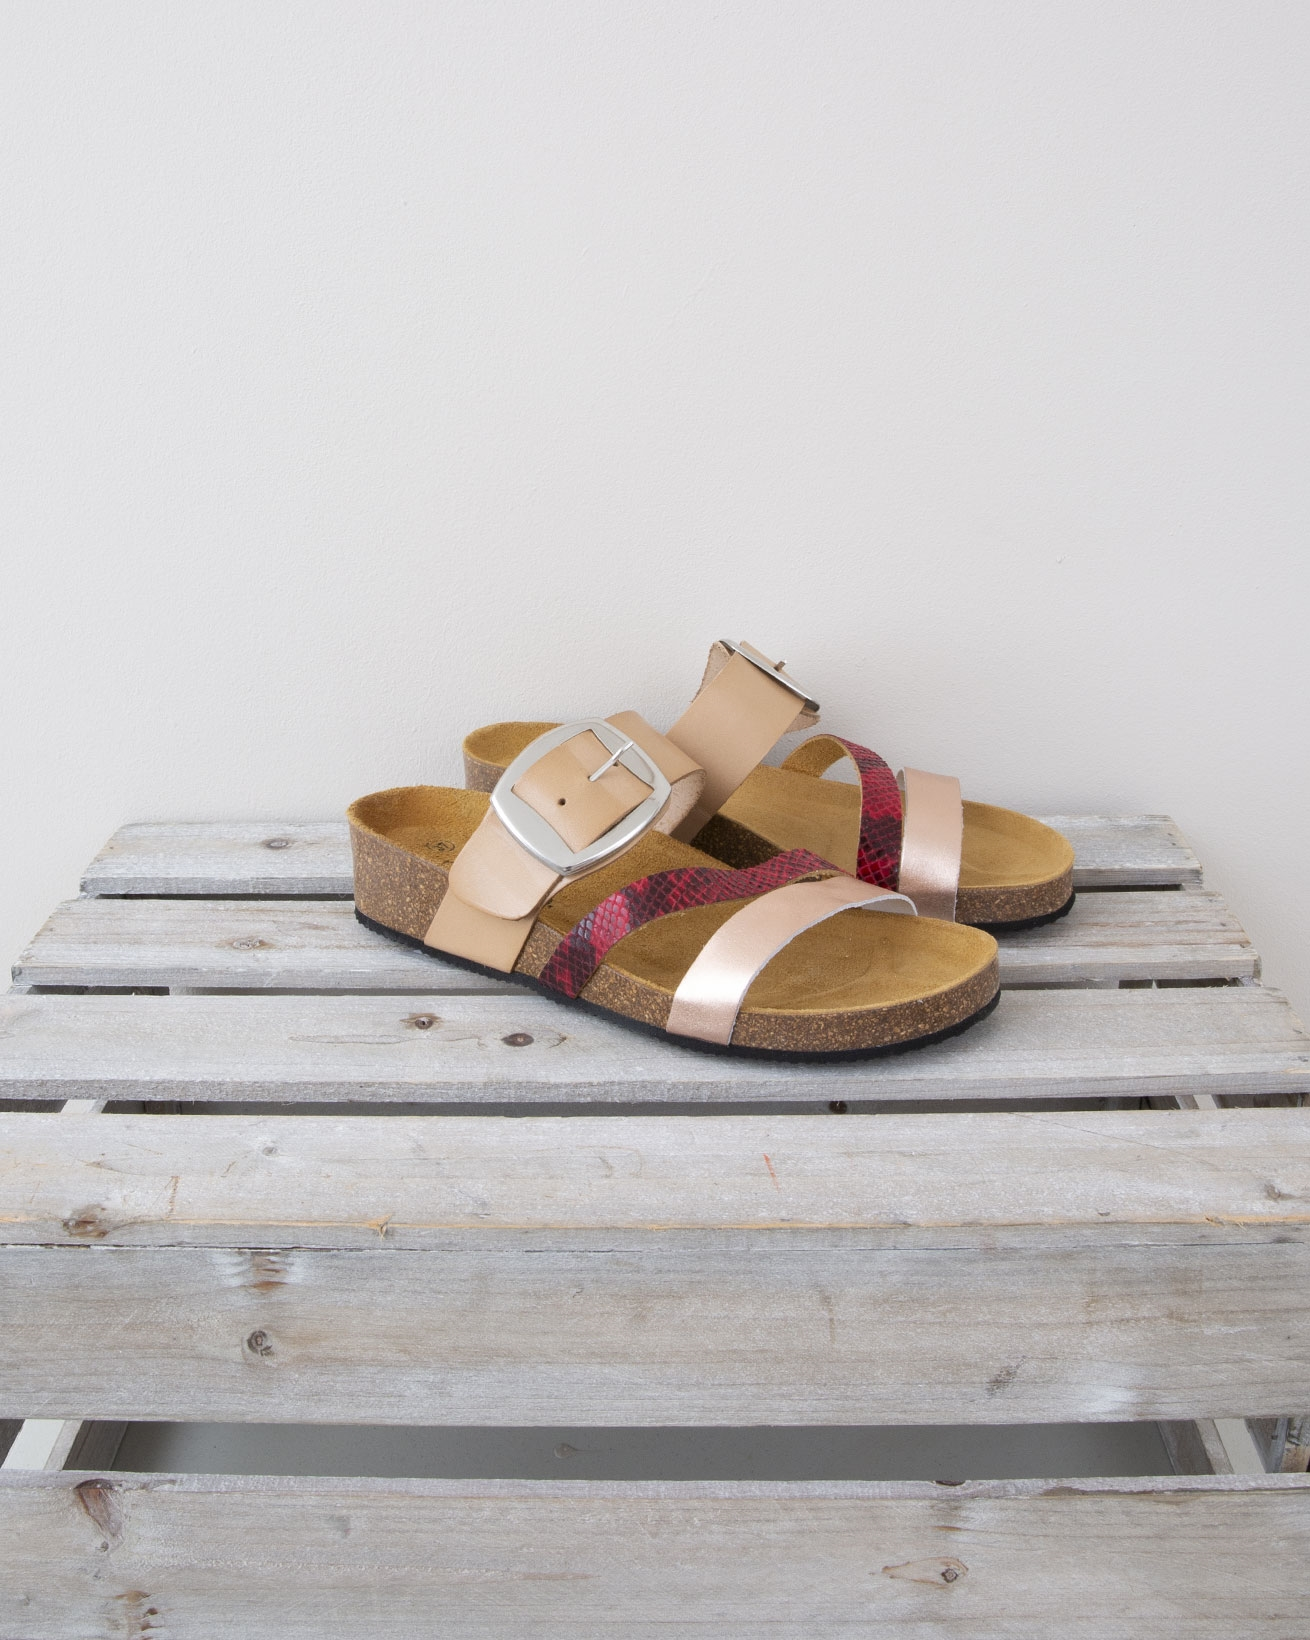 Small Wedge Triple Strap Sandal - Size 37 - Nude, Pink Snake & Rose Gold - 1328